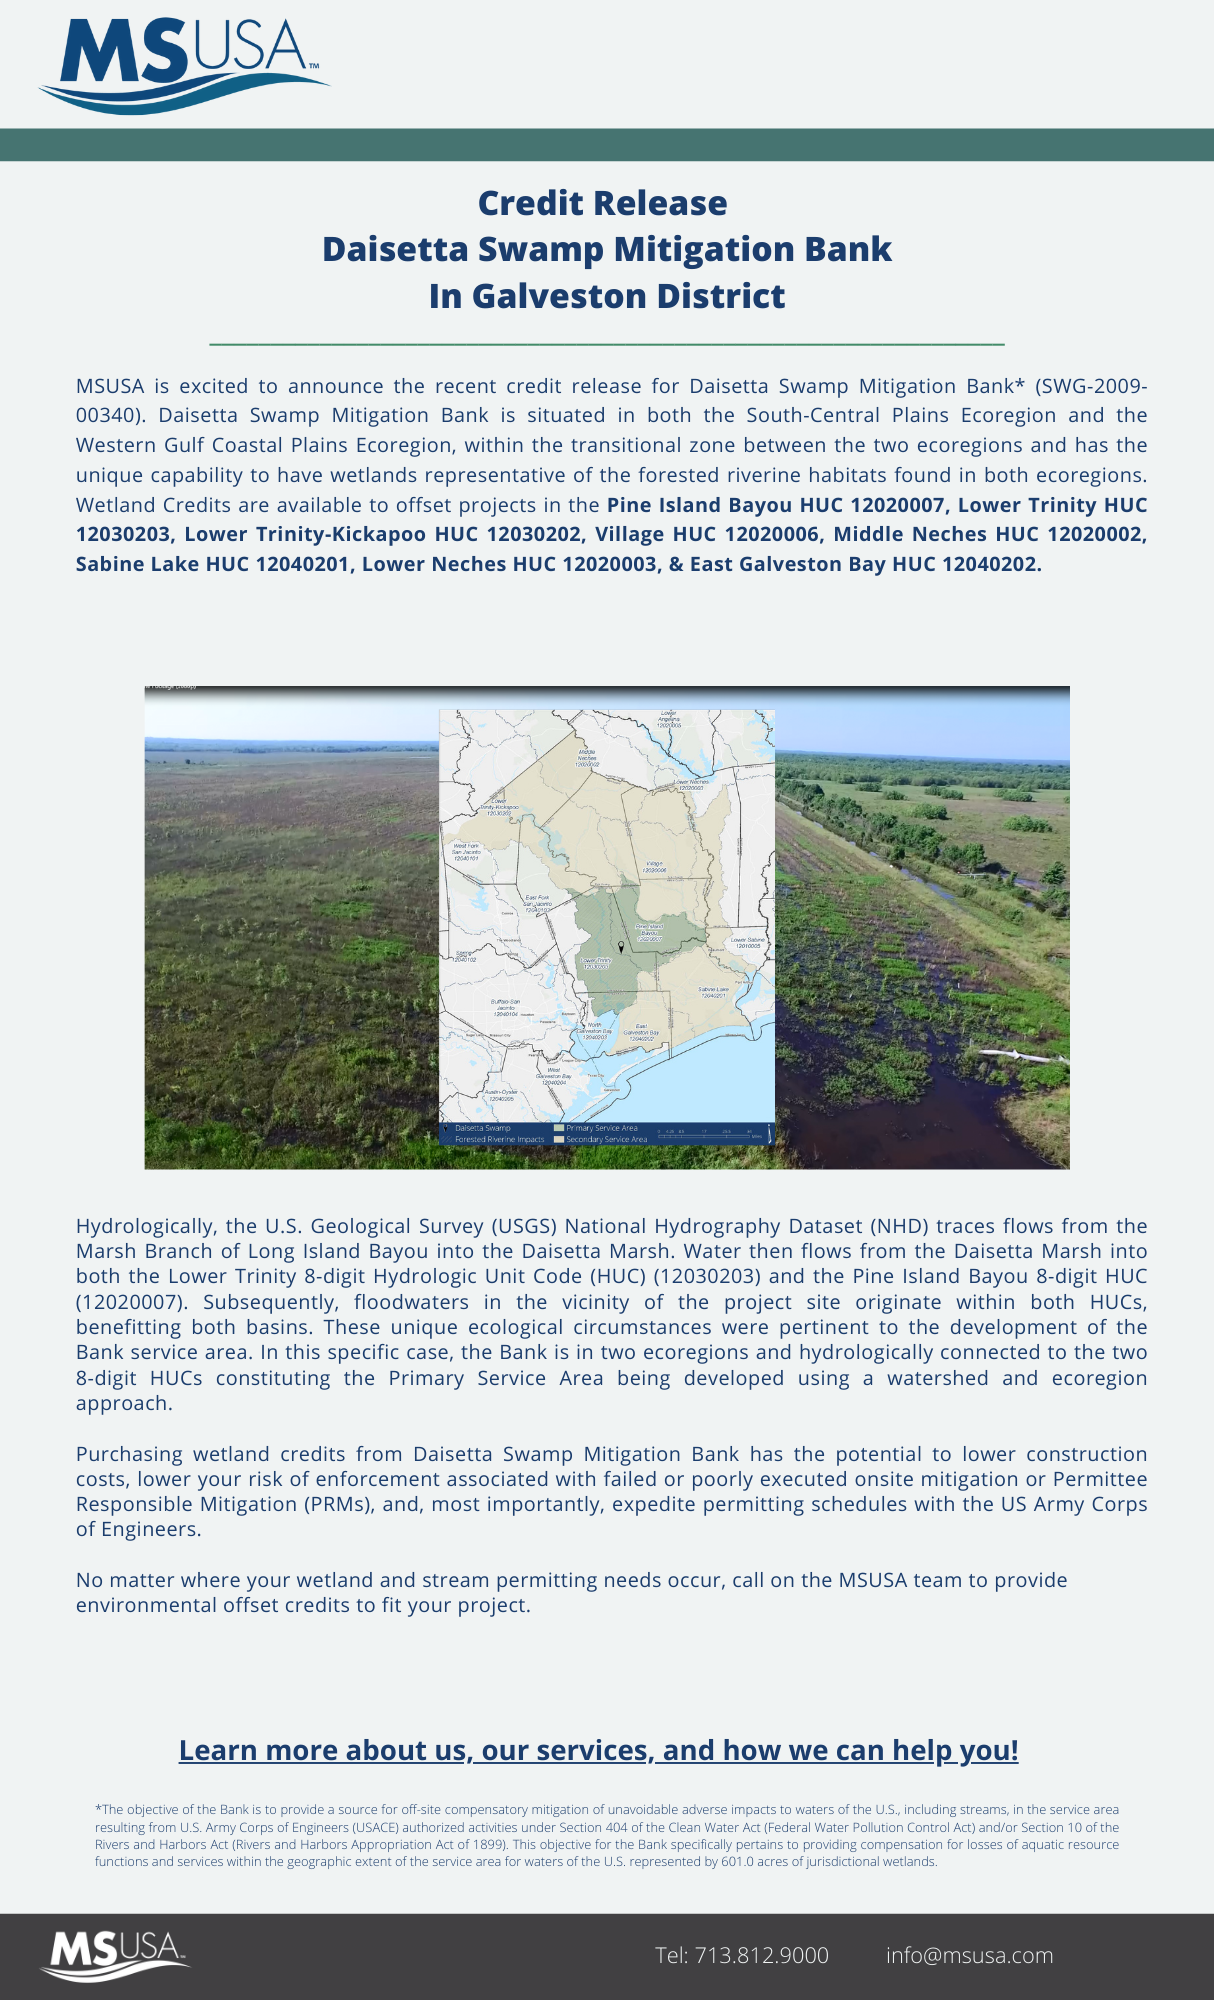 Credit Release Announcement – Daisetta Swamp Mitigation Bank, located in Liberty County, Texas, has received a credit release on July 30, 2021.